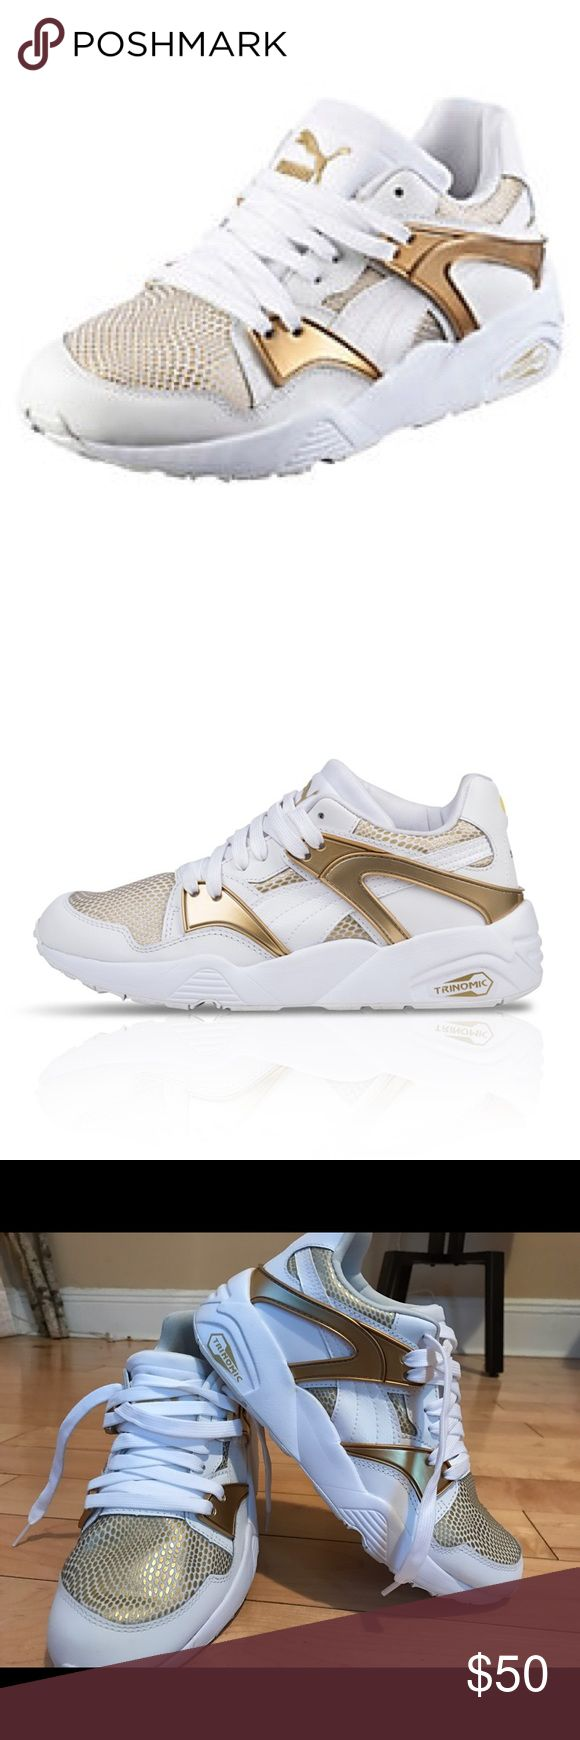 Puma Trinomic Blaze Gold & white sneakers Trinomic Blaze GOLD Women's Trainers is part of the cross-category GOLD pack, has subtle accents of gold and a futuristic distorted snake graphic, inspired by Blaze of Glory, keeping its classical Running look with the famous Trinomic tooling and the overlays. Textile upper. Stabilizing TPU forefoot and midfoot saddles. EVA midsole for great cushioning and low weight. Full-length Trinomic cushioning technology. Rubber outsole. Puma Shoes Sneakers